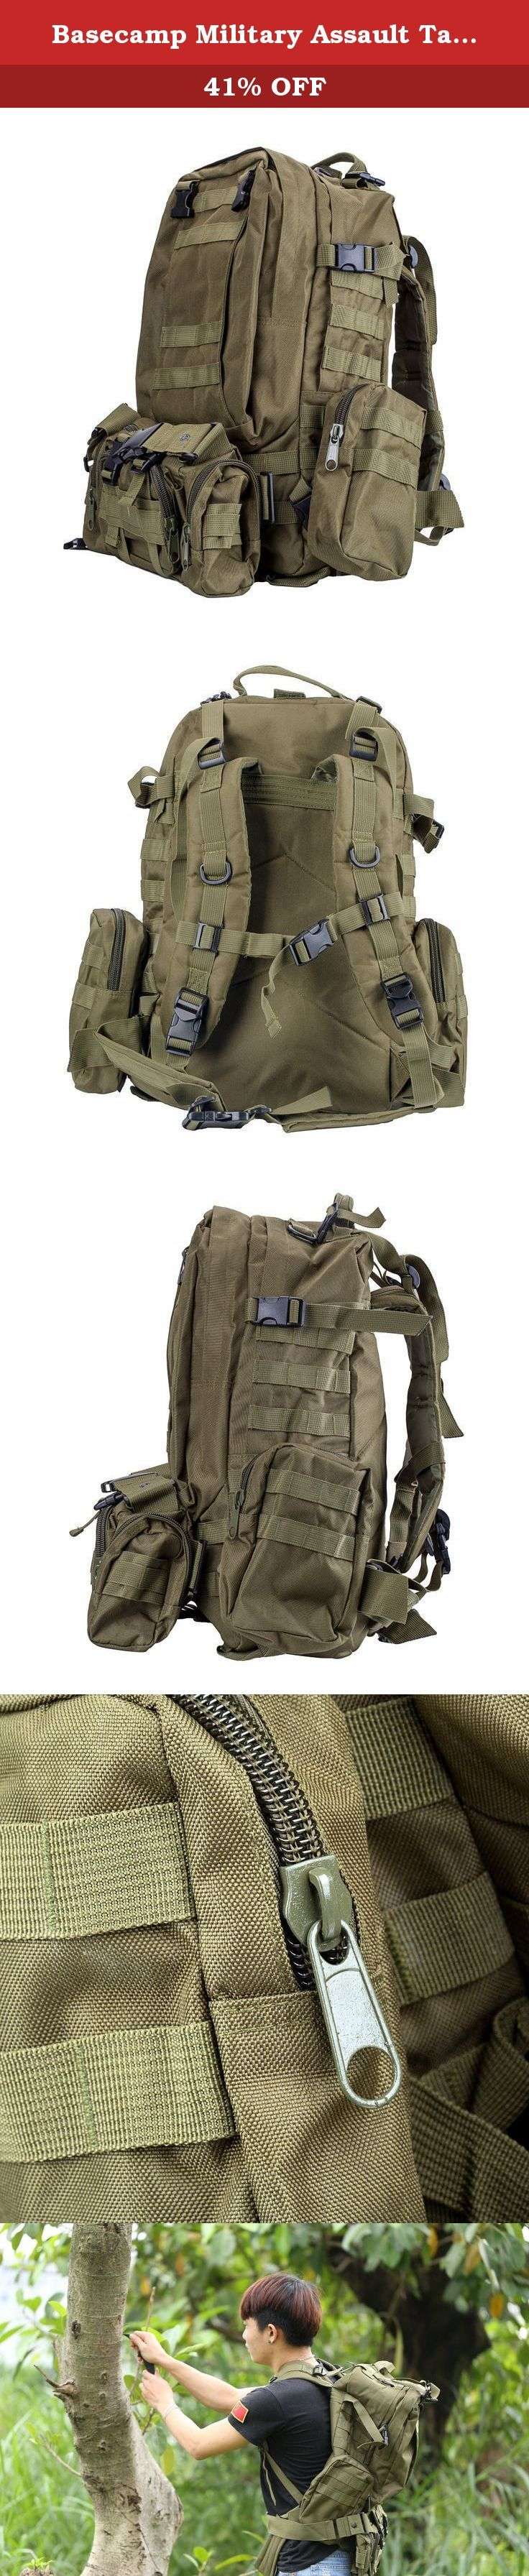 Basecamp Military Assault Tactical Backpack - 50L Green Outdoor Large Tactical Rucksack Molle Backpack for Camping Hiking Mountain Trekking Bag Combined with 3 MOLLE Bags Pack Combat Rucksack Daypacks. This Tactical Backpack is ideal and convenient for taking outdoor activities, such as hiking, camping, or climbing. With this Large bag, you're prepared to take on all types of weather conditions and terrain. High quality with competitive price and more Useful gears are realized here!...